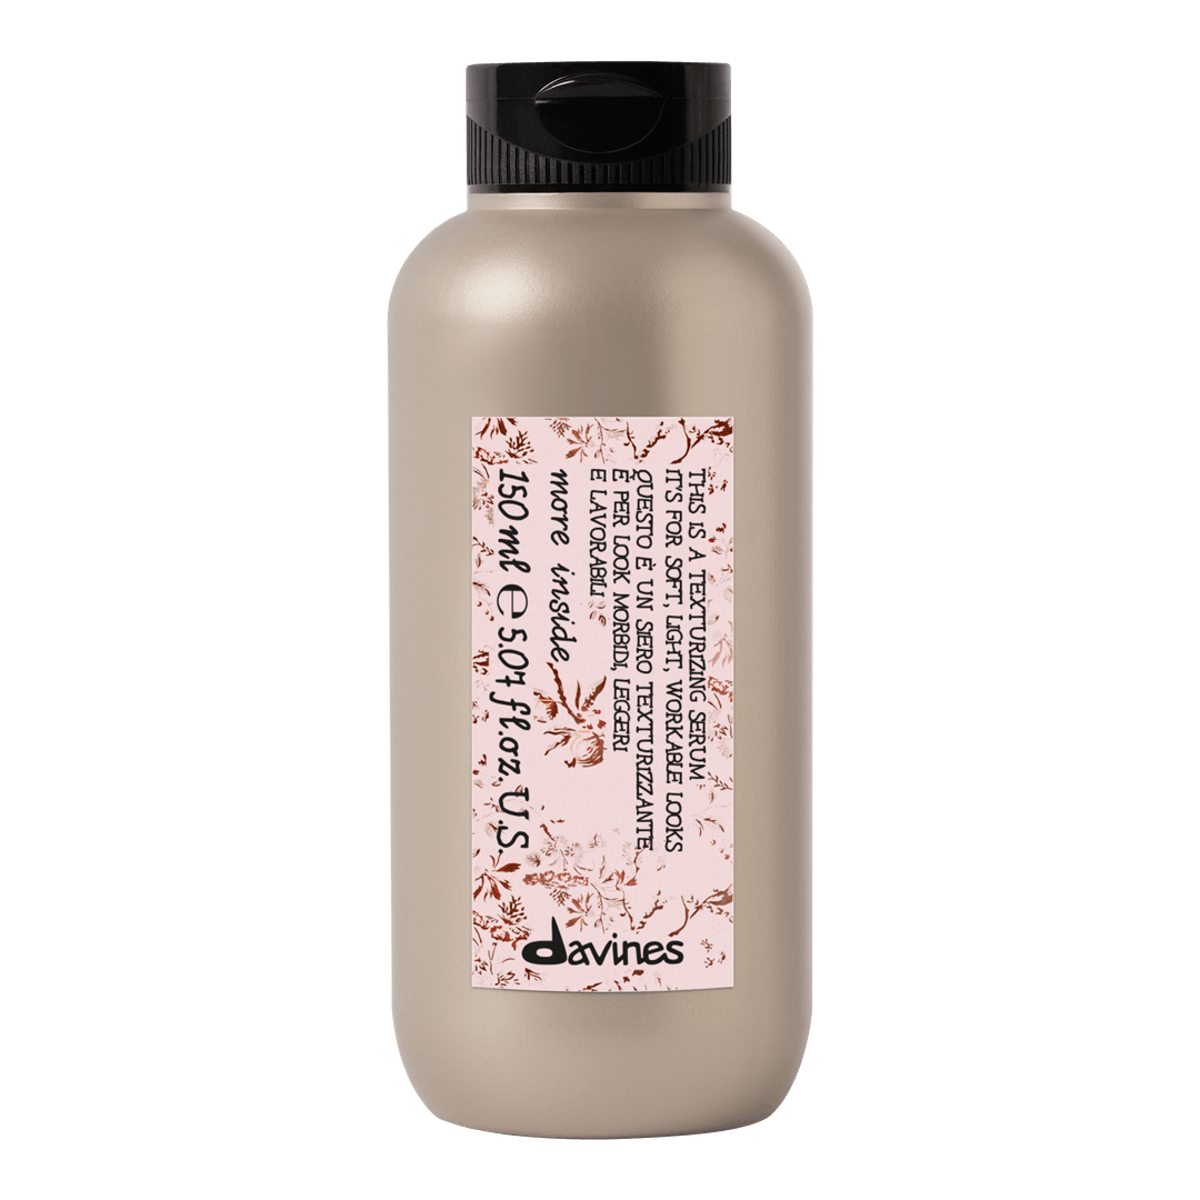 Packaging for Davines' new This is a Texturizing Serum